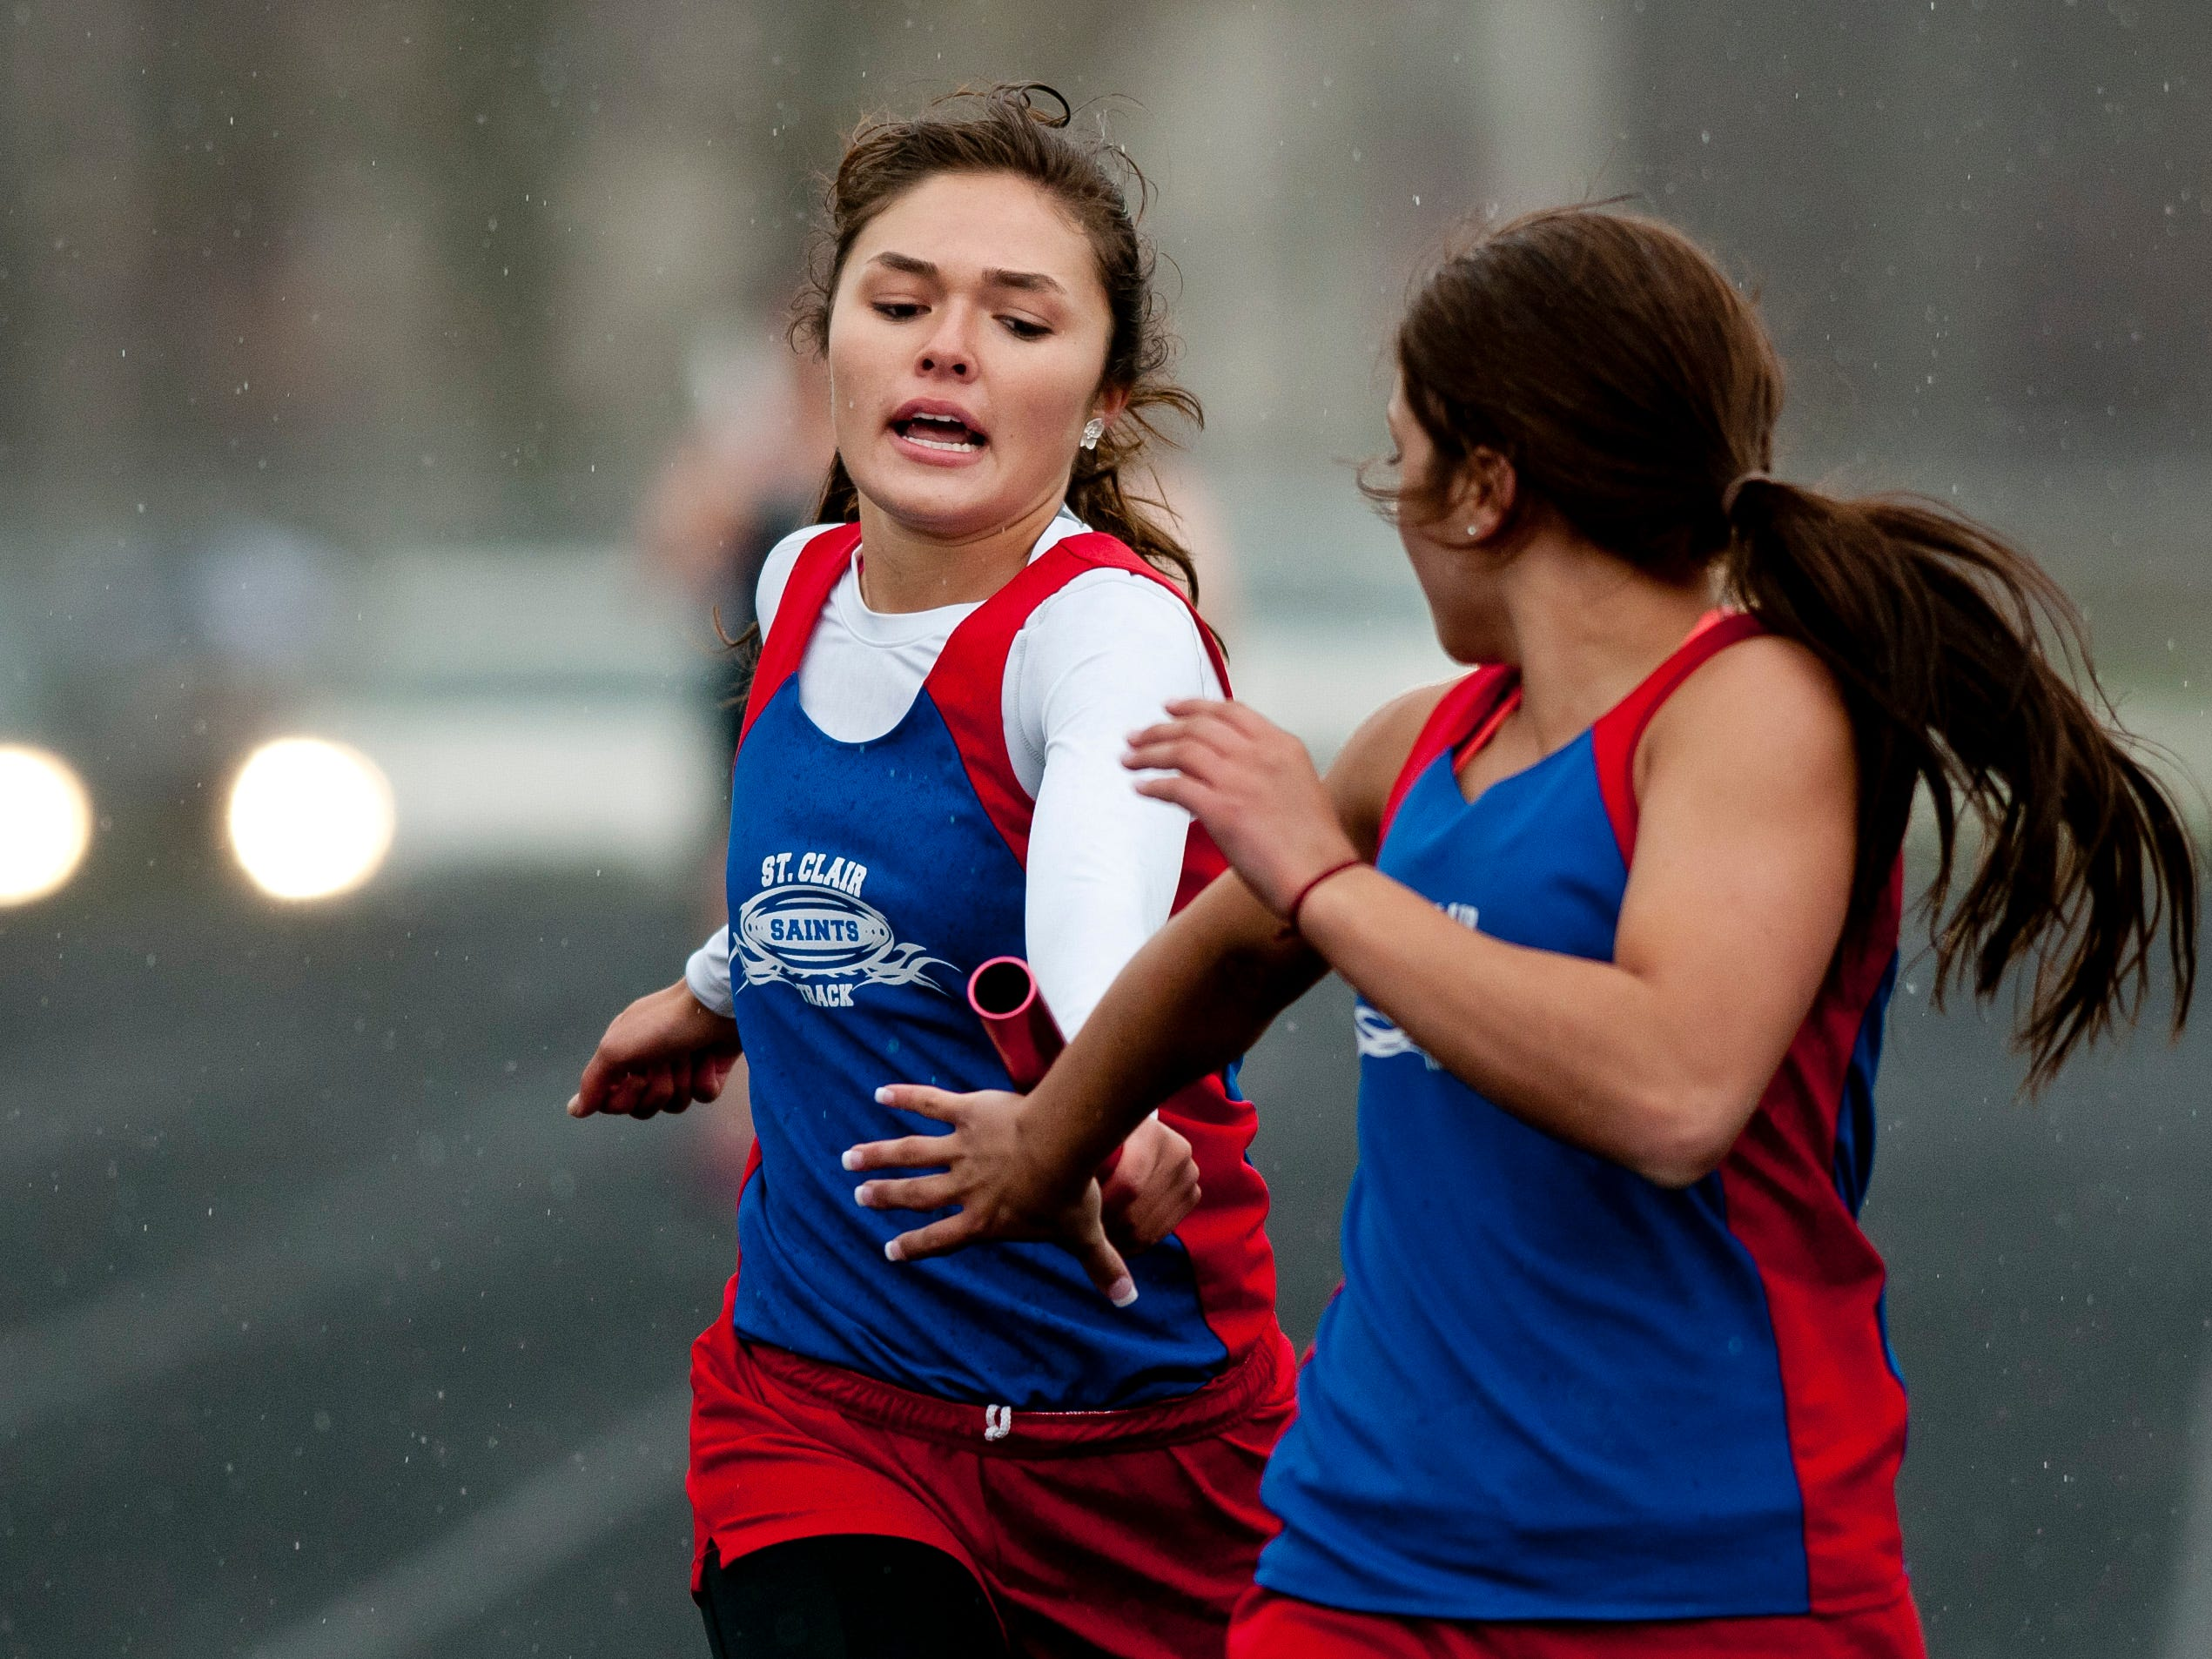 St. Clair junior Kaitlyn McLeod hands off the baton to junior Sam Jozwiak in the 4x200-meter relay during a track meet Thursday, April 30, 2015 at Marysville High School.